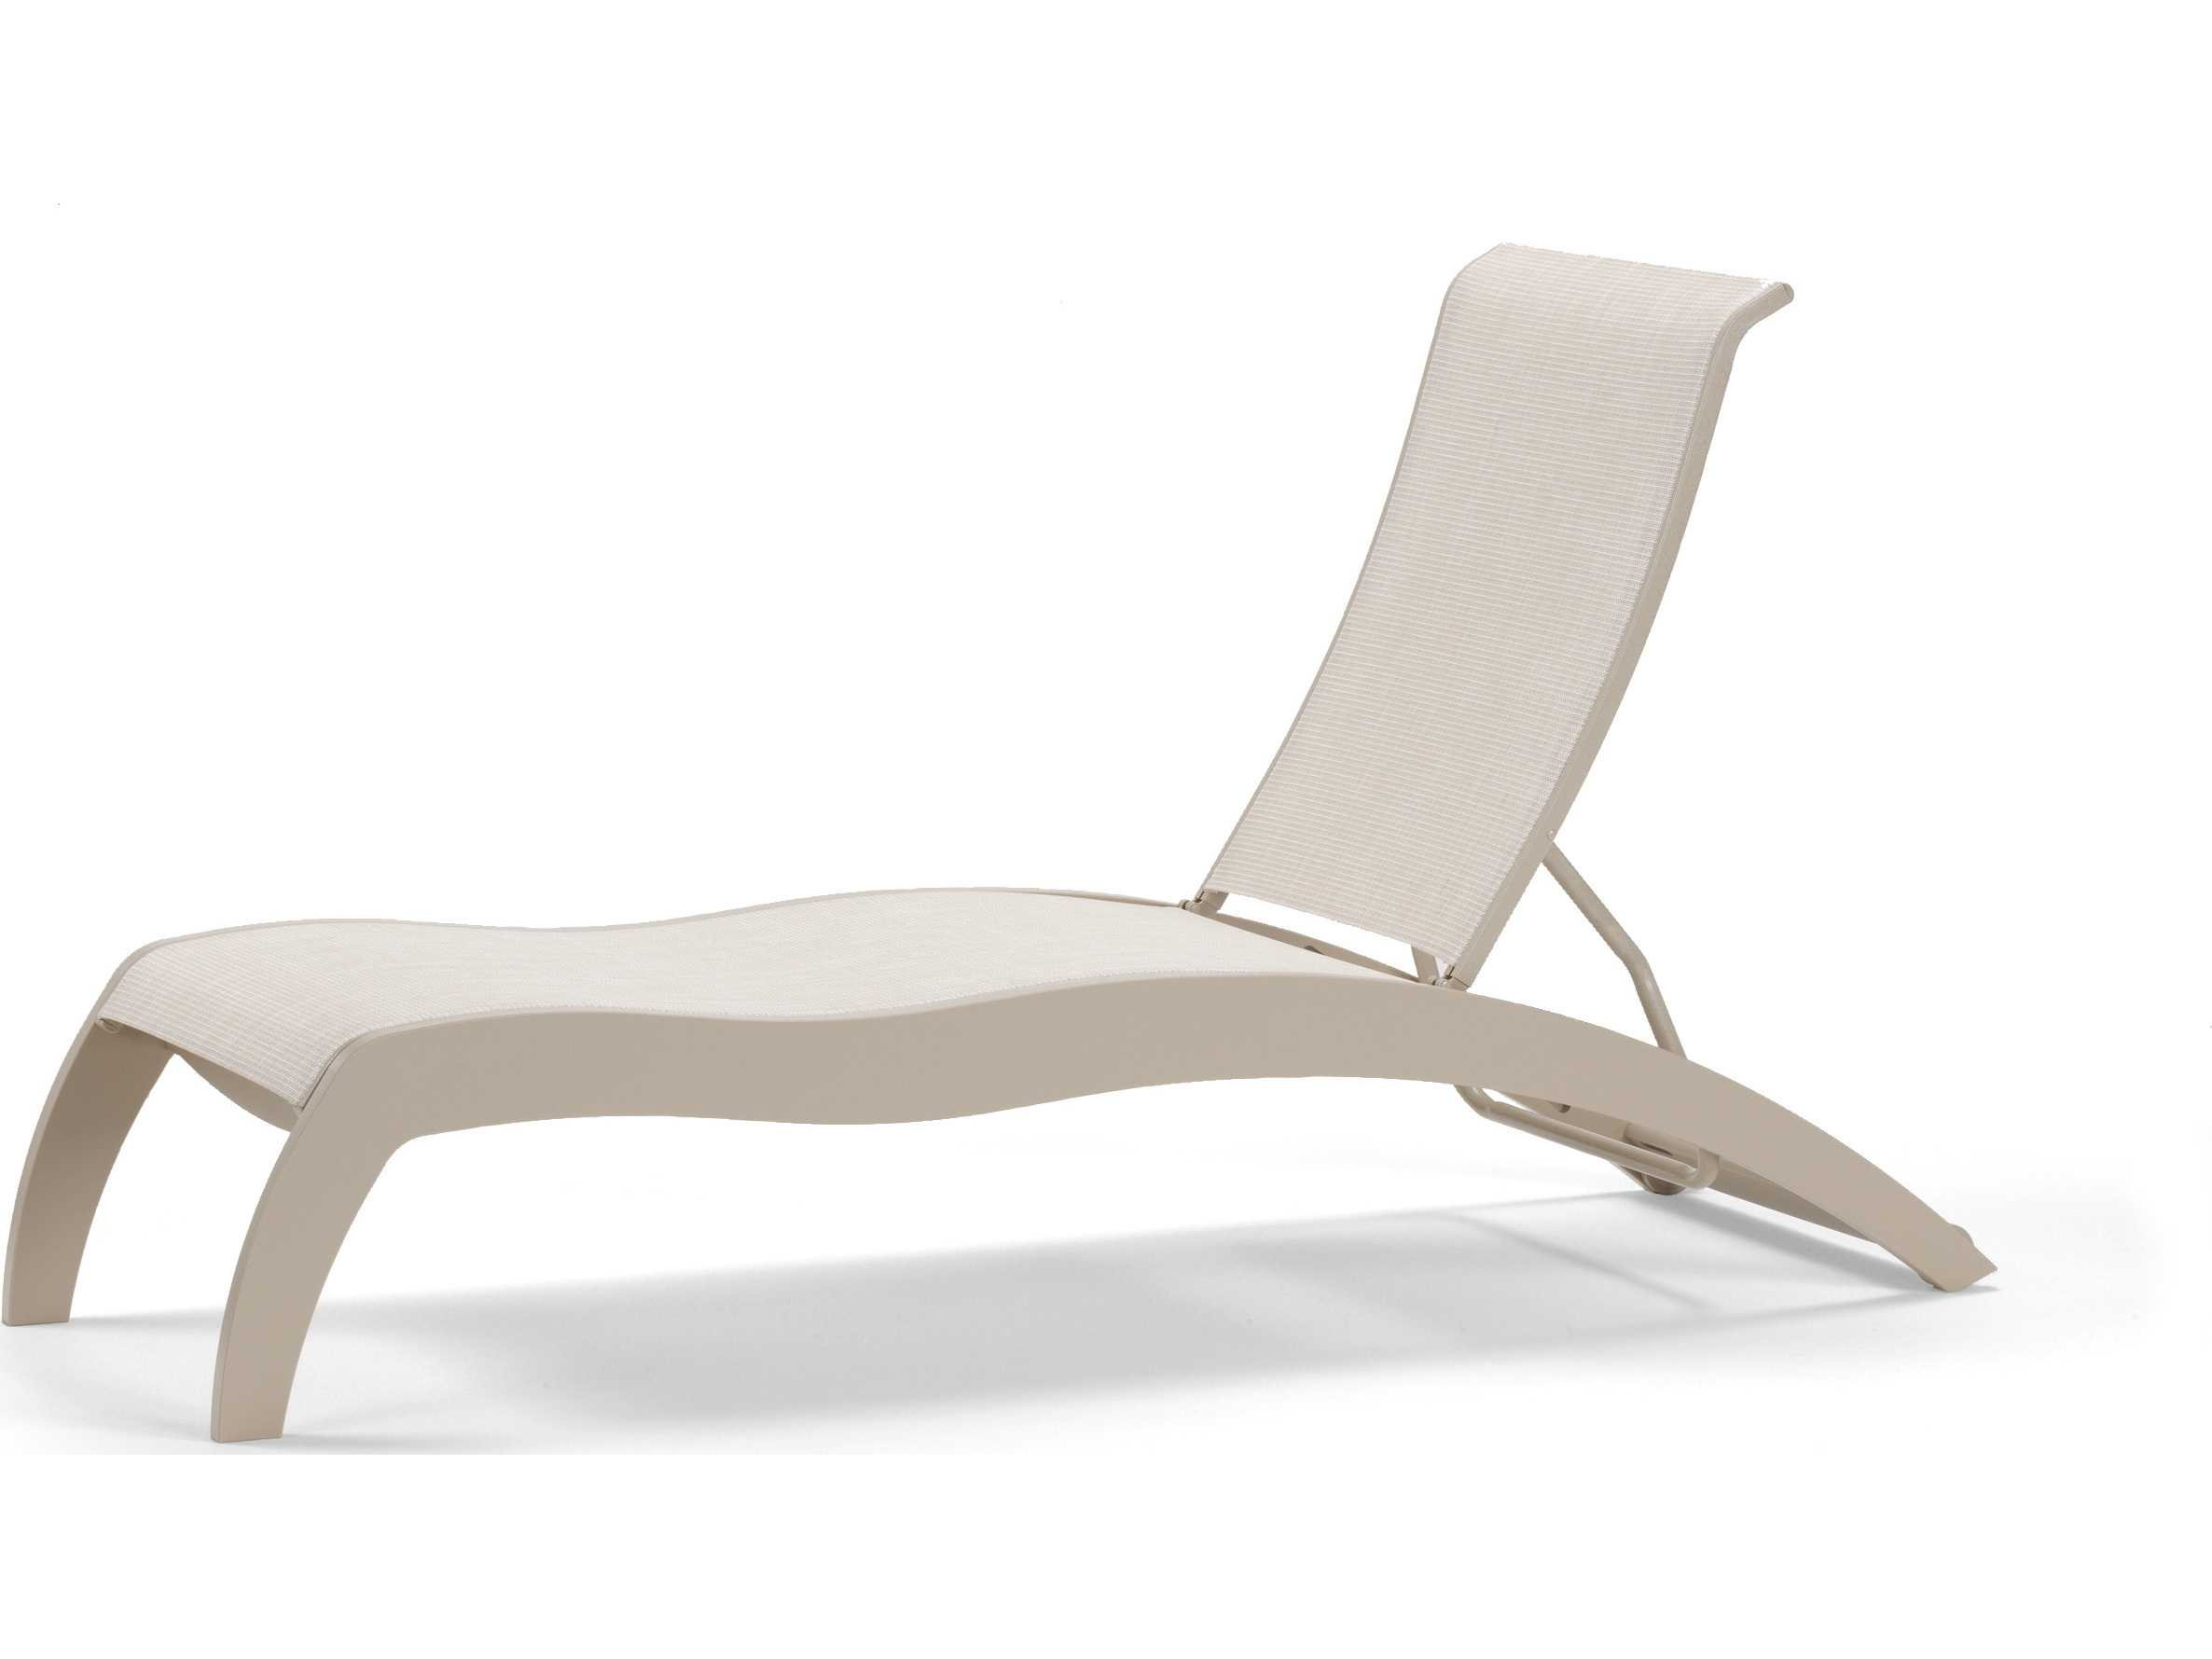 Telescope Casual Dune MGP Sling Recycled Plastic Chaise Lounge